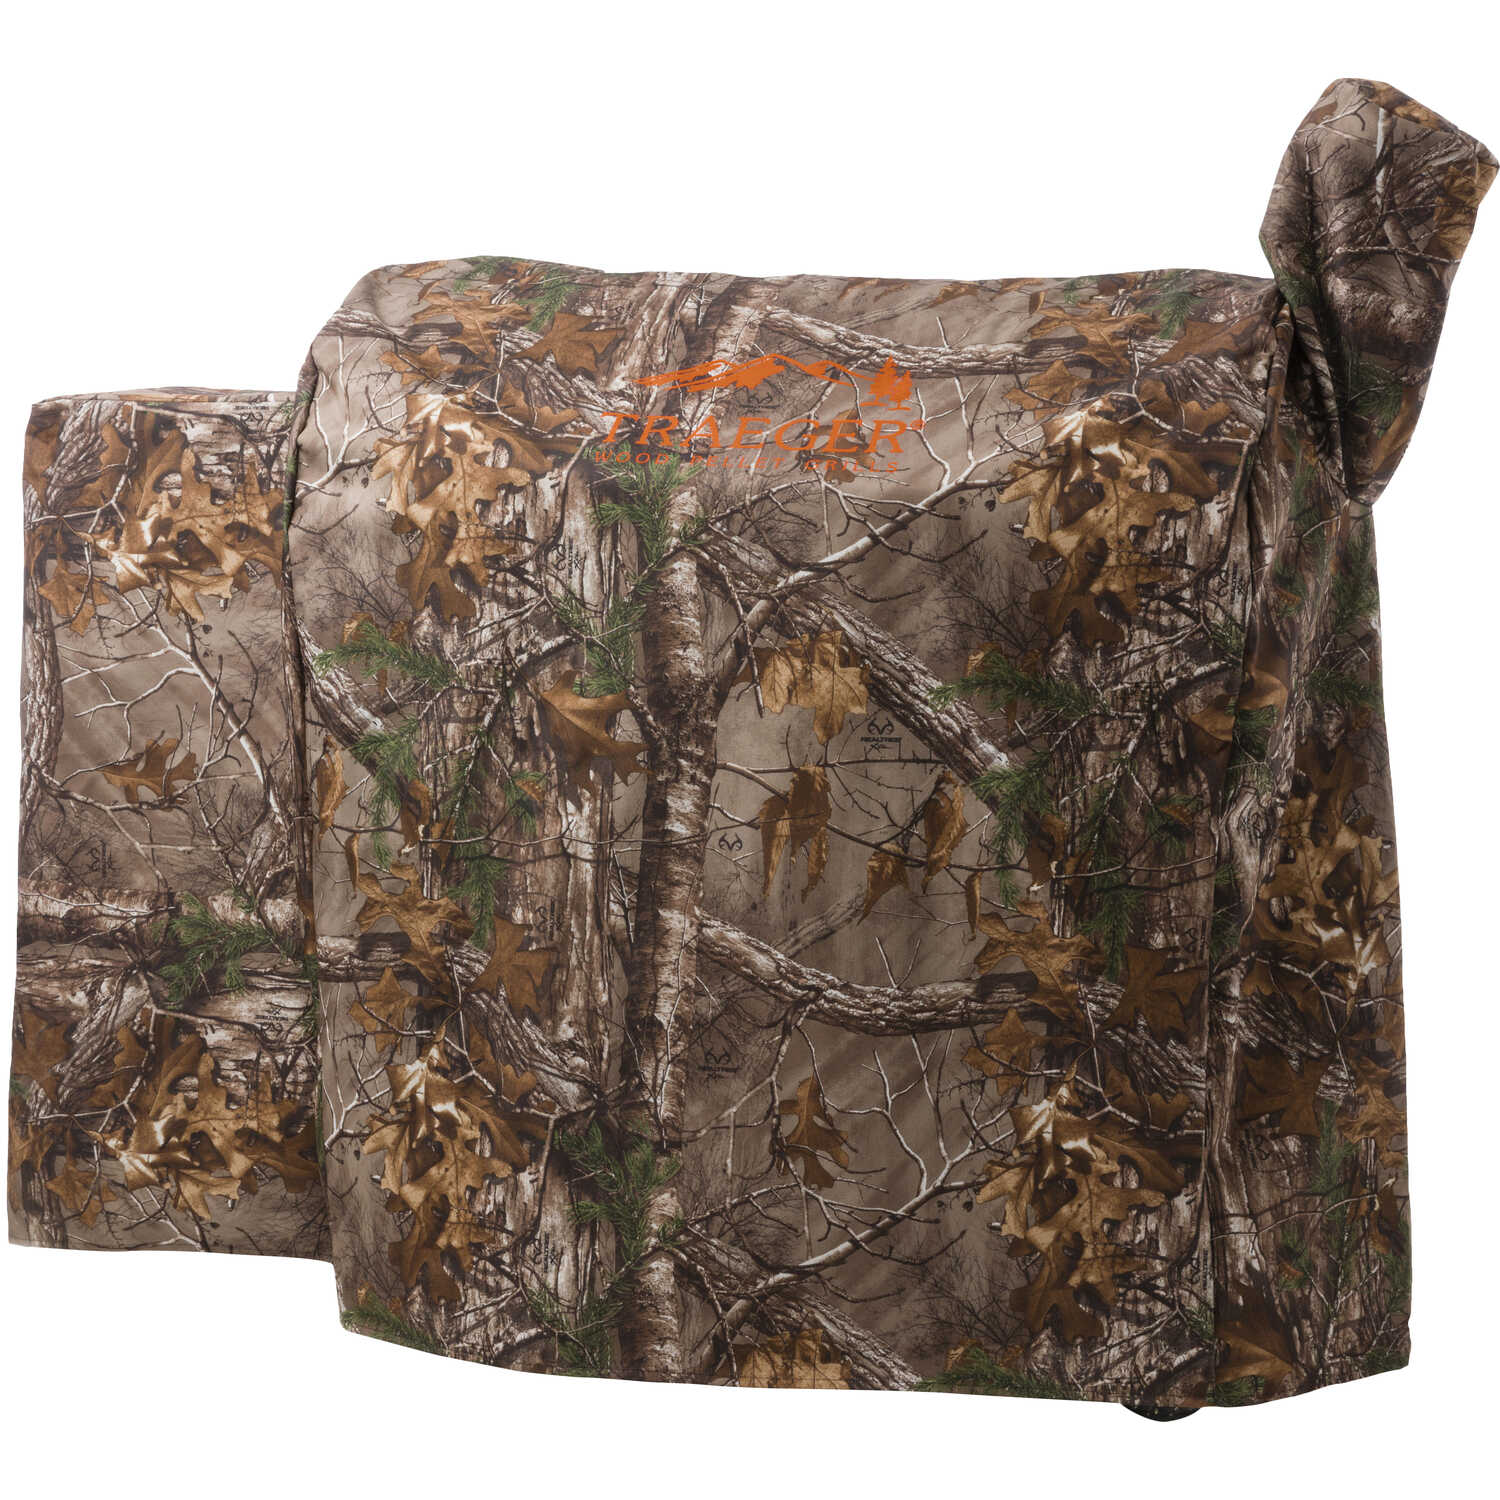 Traeger  Realtree  Brown  Grill Cover  22 in. W x 39 in. H x 49 in. D For 34 Series/Texas Grills